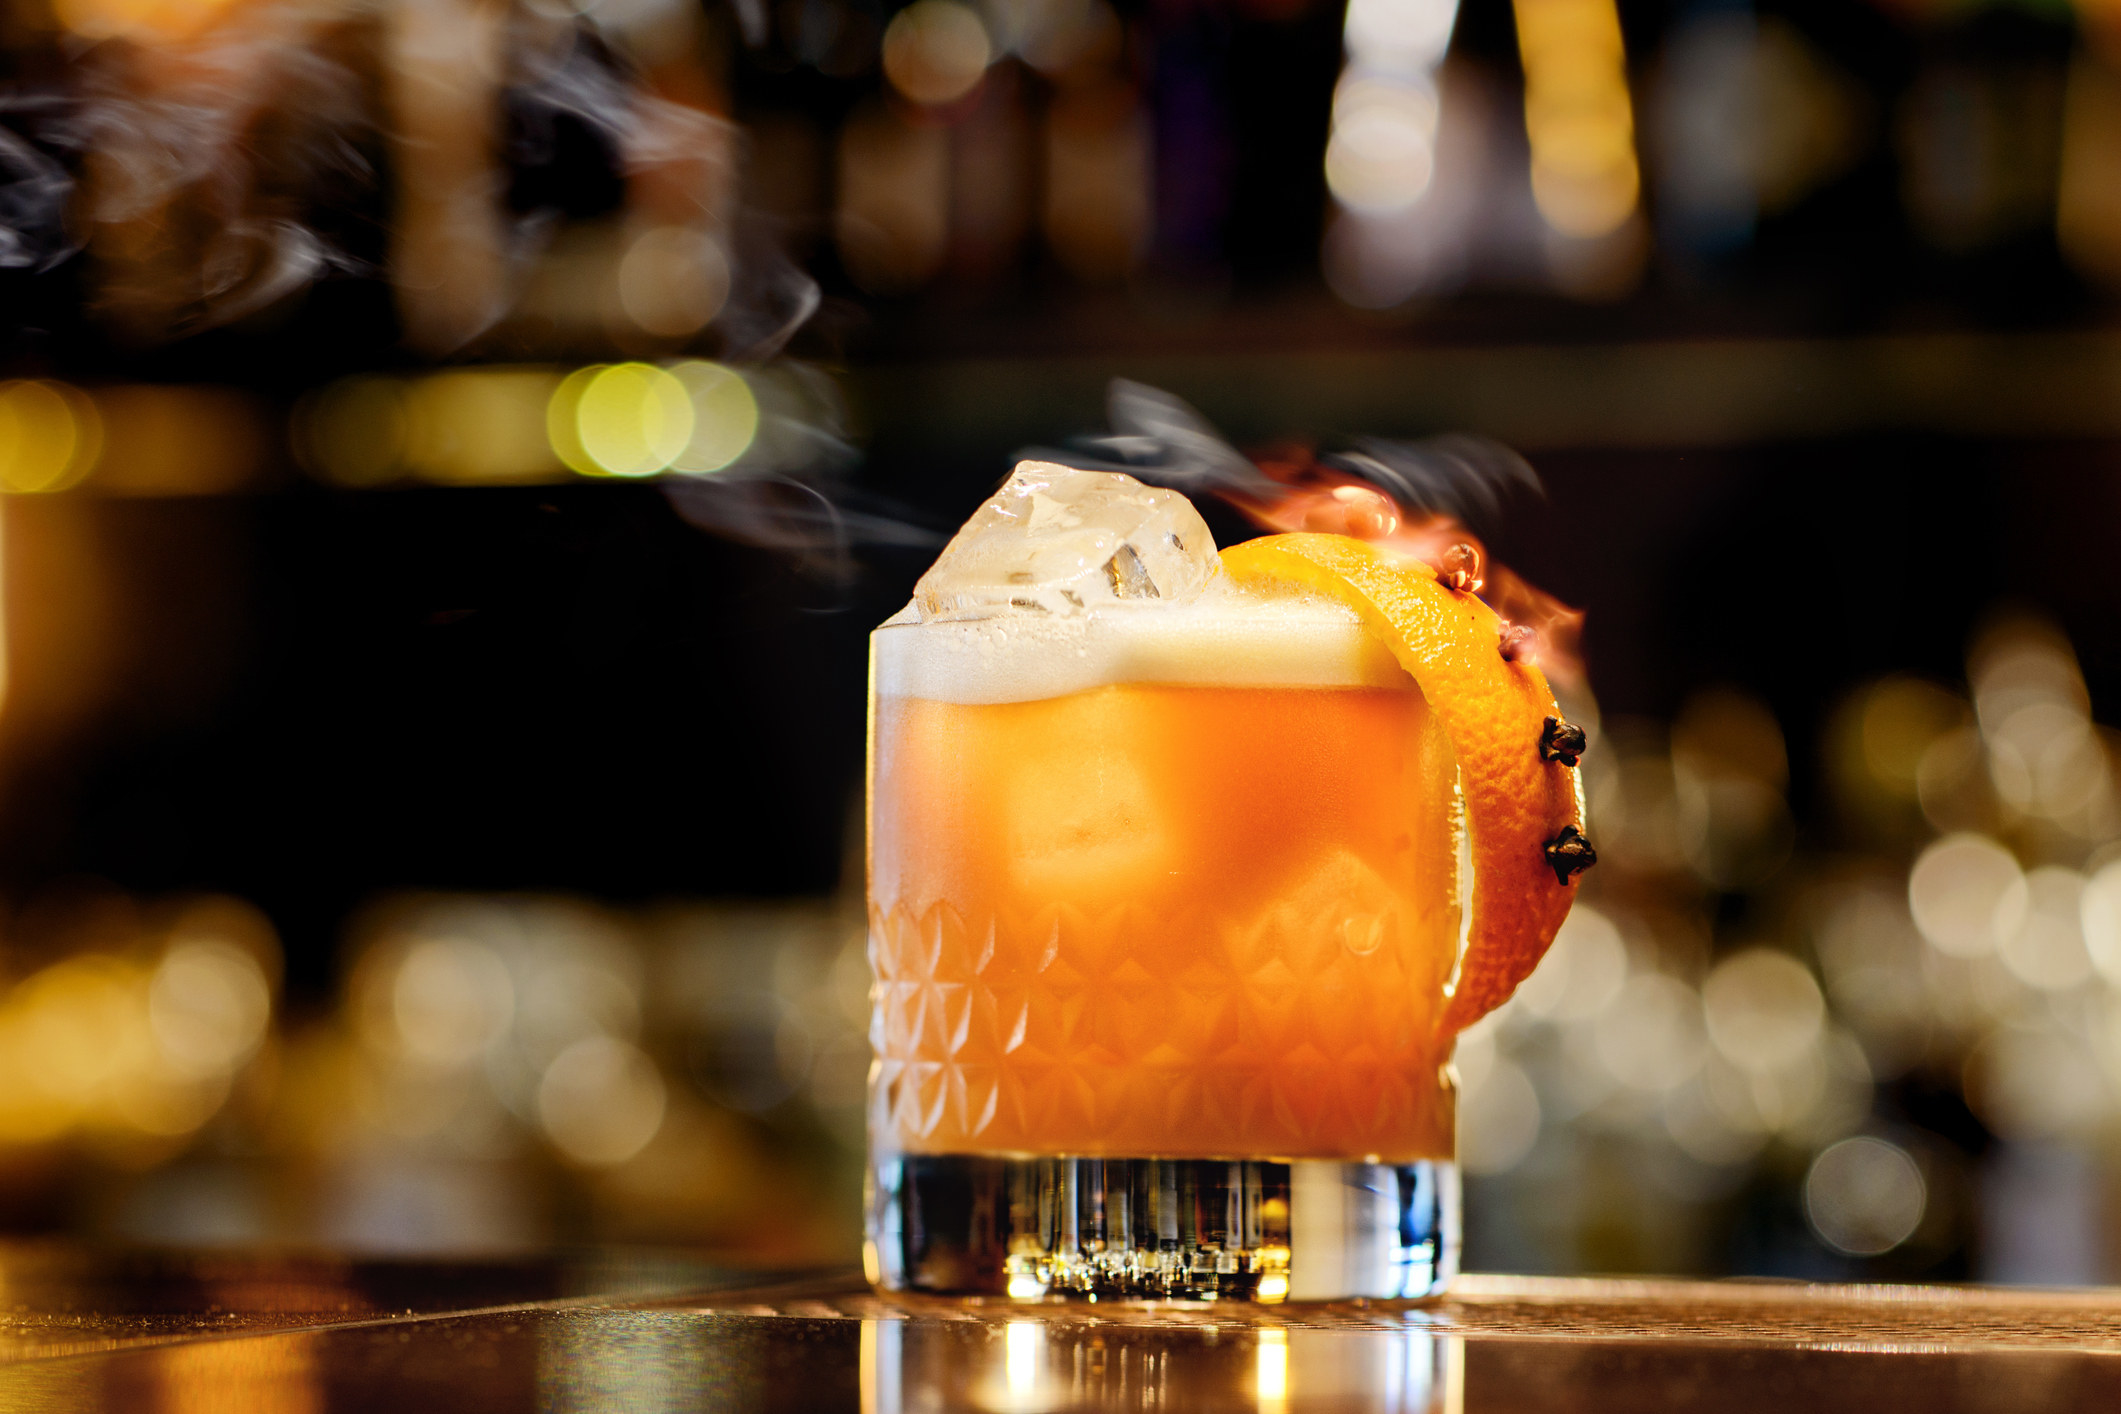 A whiskey sour on a cocktail bar.